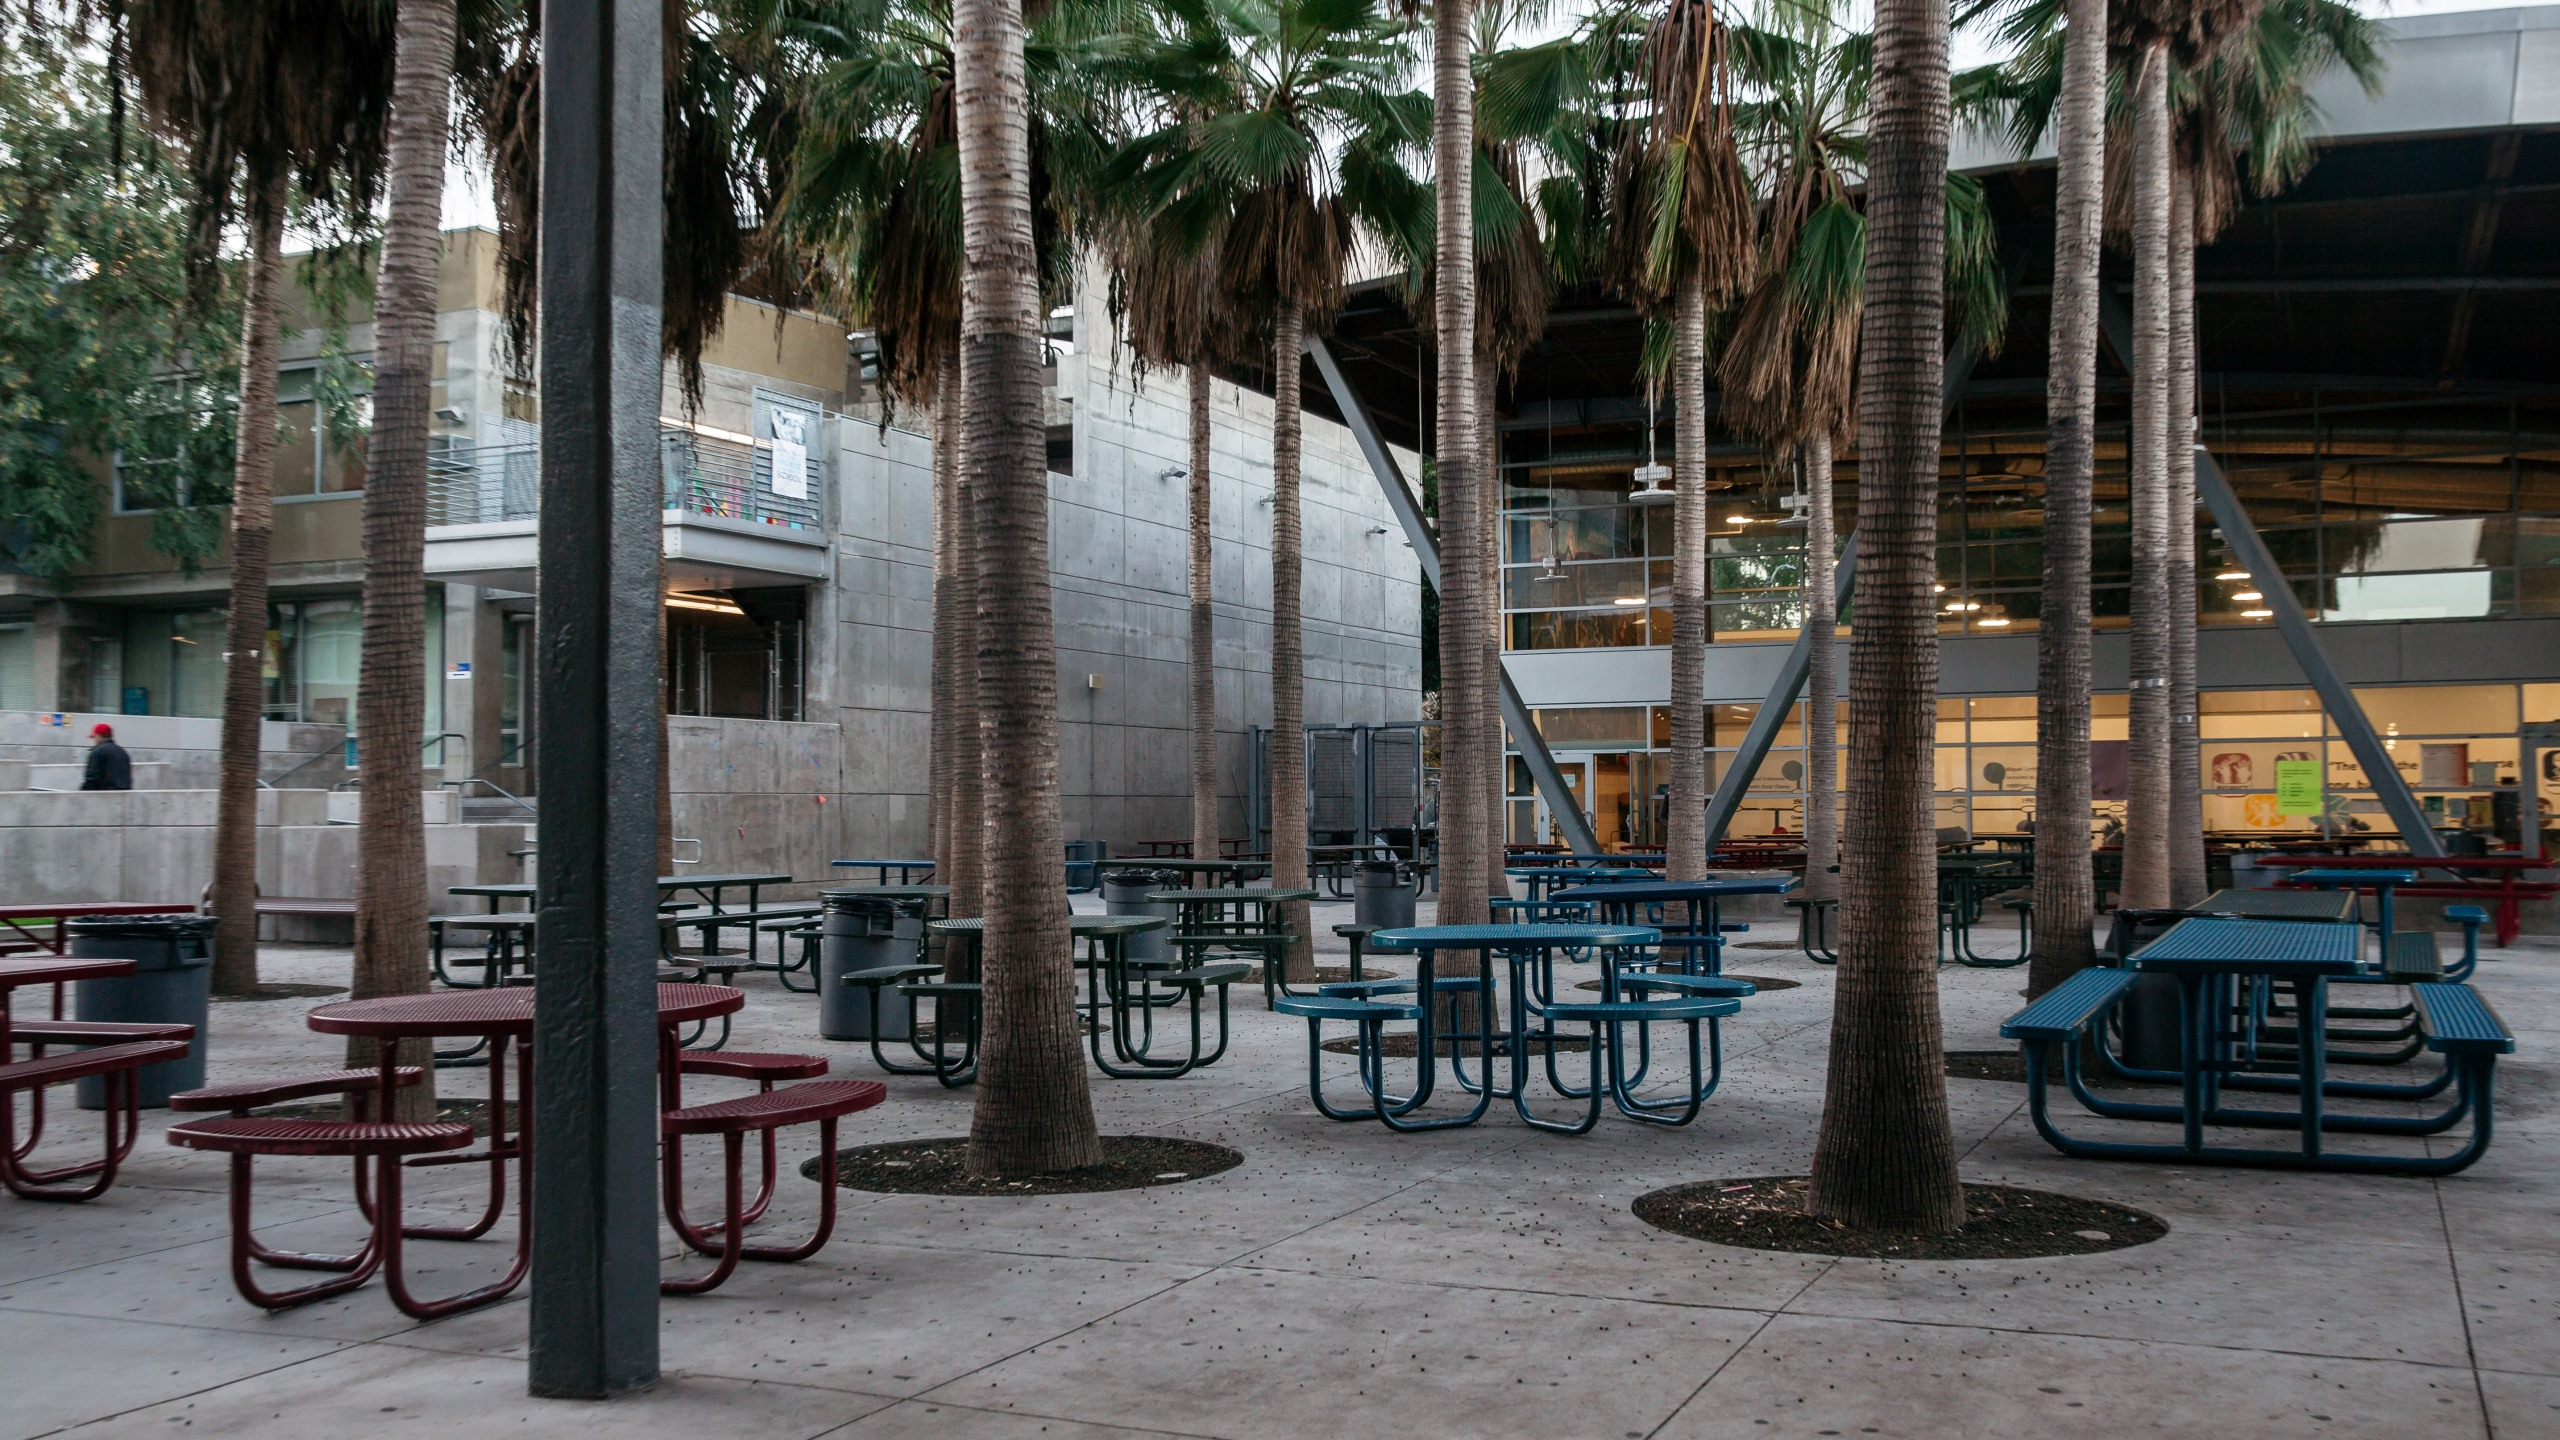 The courtyard of the Miguel Contreras Education Complex in downtown Los Angeles is seen on Jan. 22, 2019. (Credit: Scott Heins/Getty Images)